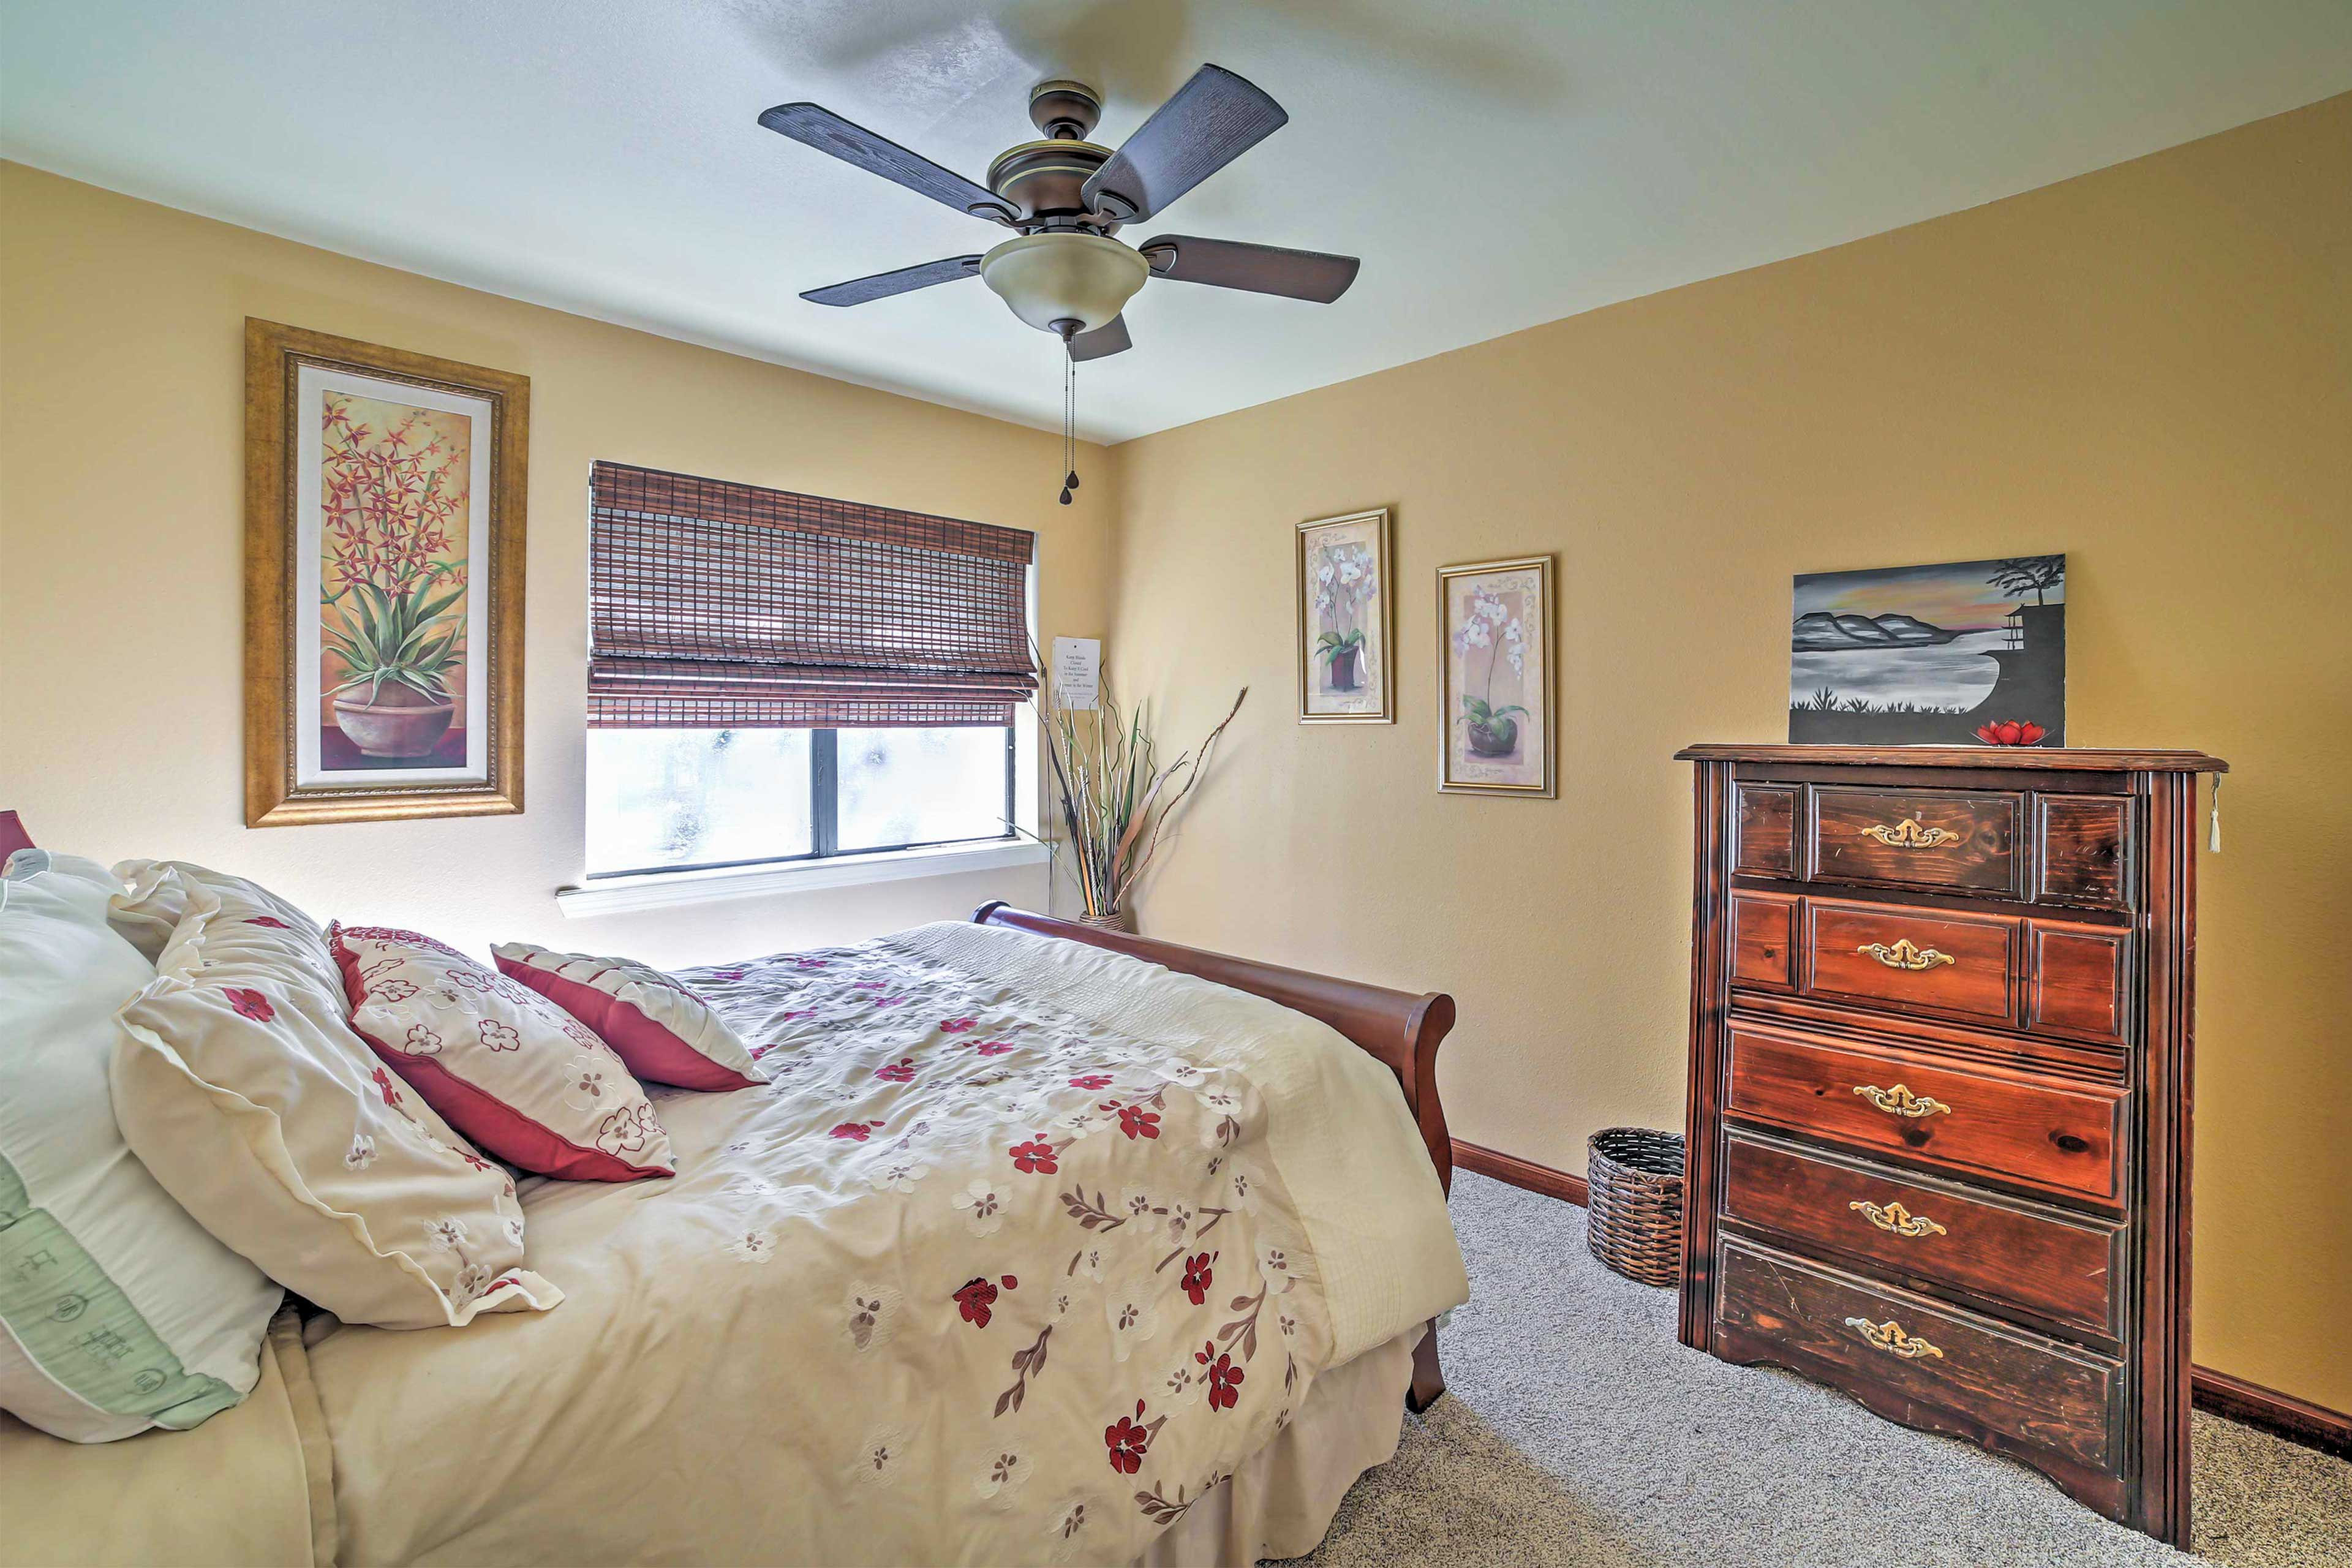 With the vintage dresser & abundance of pillows, sleep in style in this room!